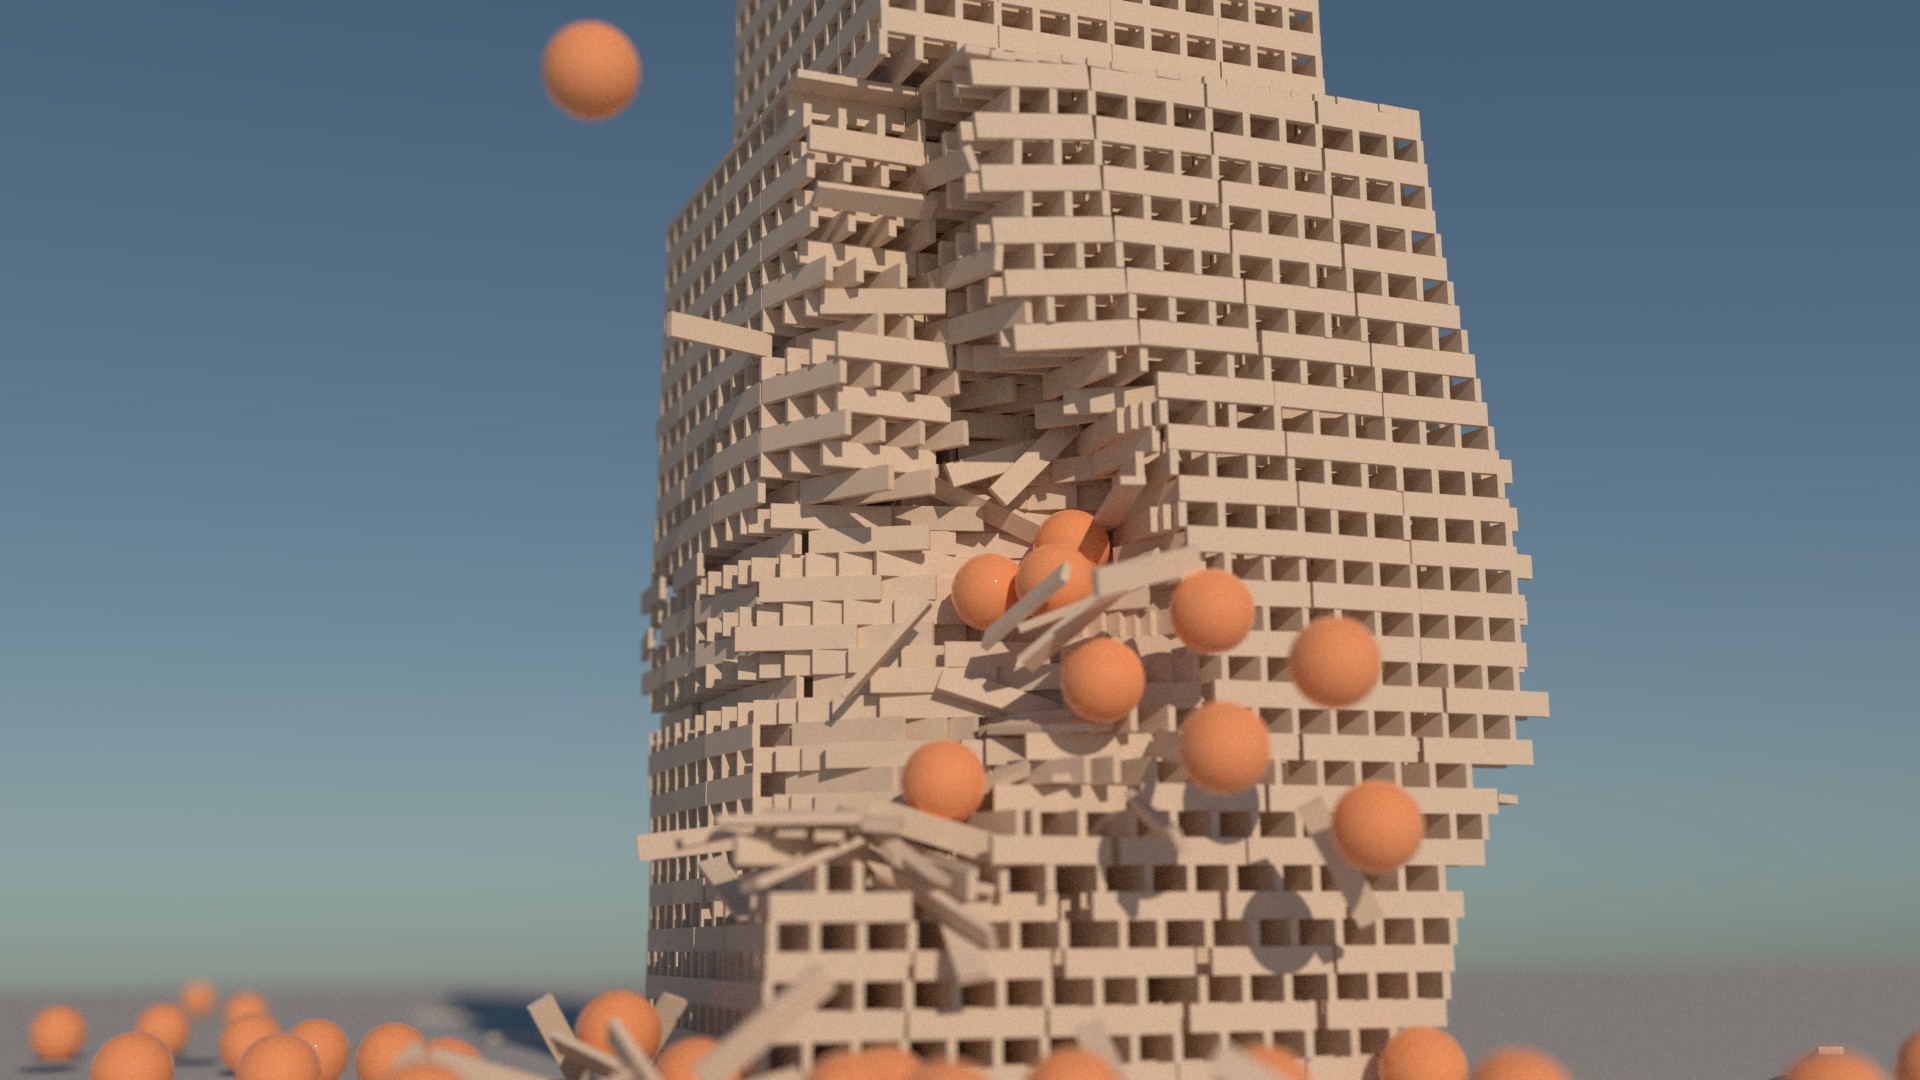 An example of an image rendered on a RAM disk. It is a tower collapse simulation rendered in Luxrender, with orange plastic balls flying at it